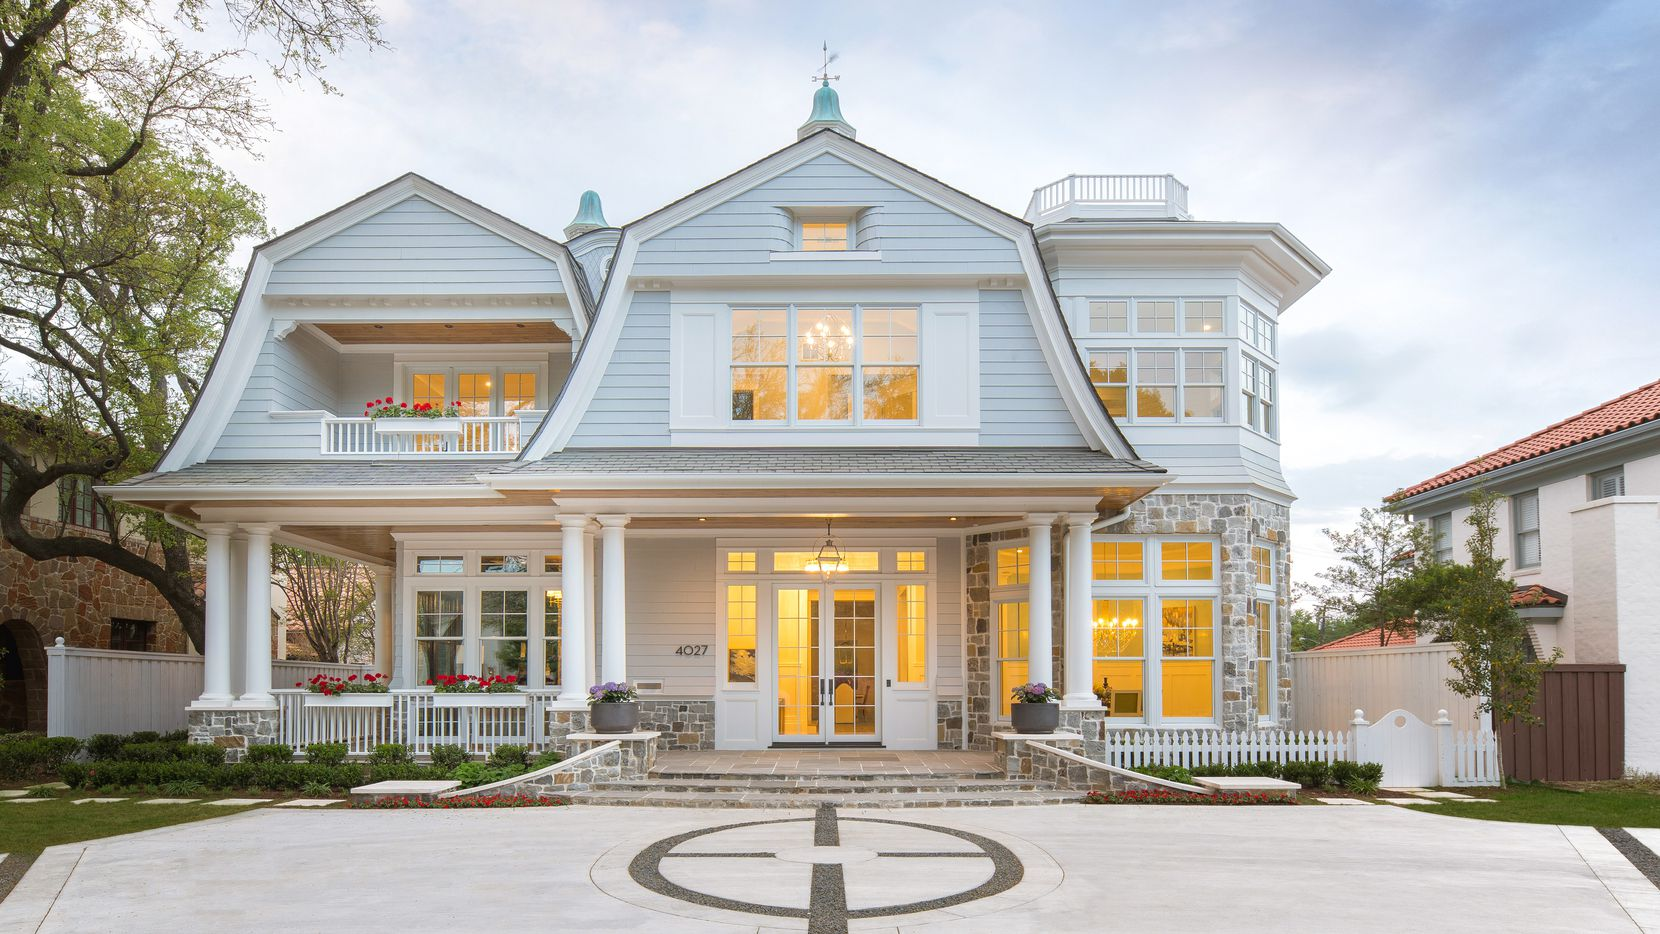 Take a look at the home at 4027 University Blvd. in Dallas.